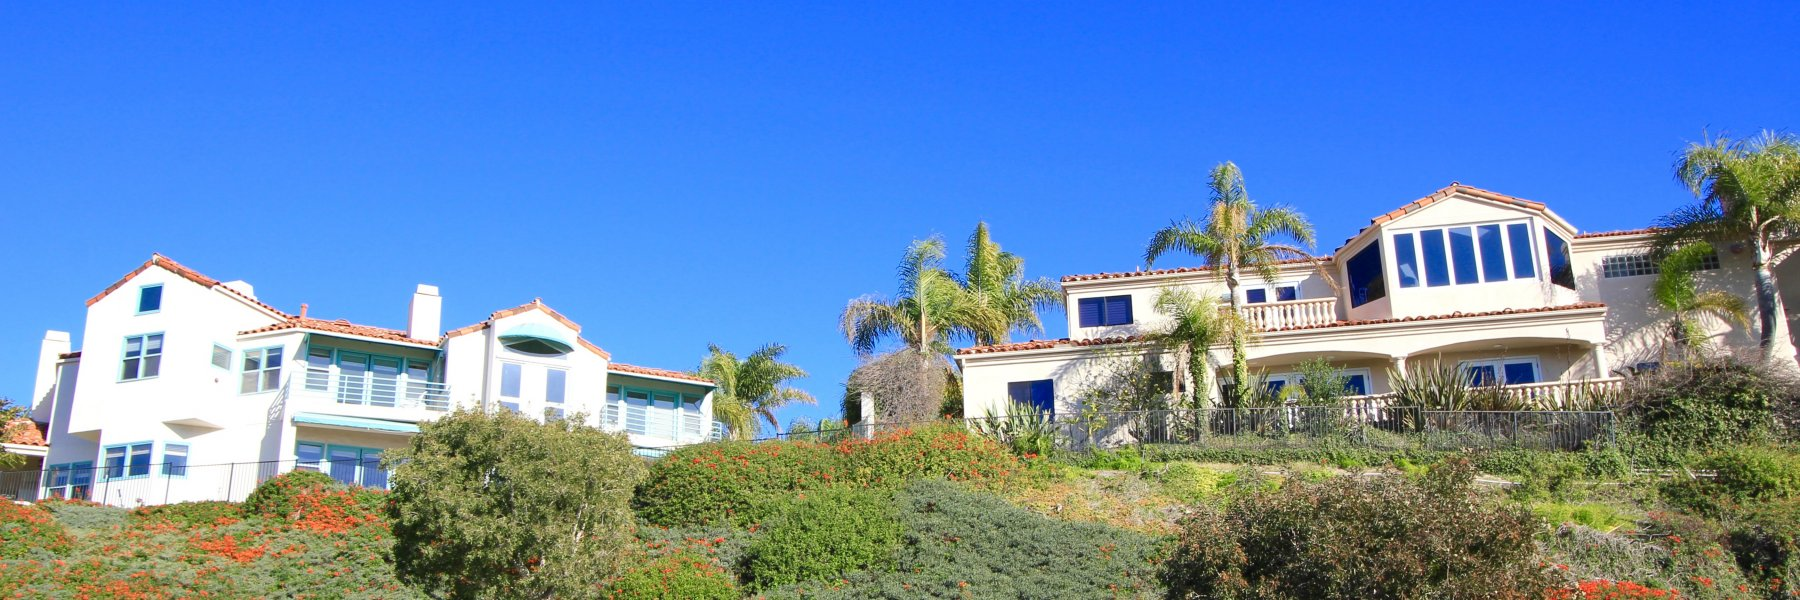 Palacio Del Mar is a community of homes in San Clemente Ca